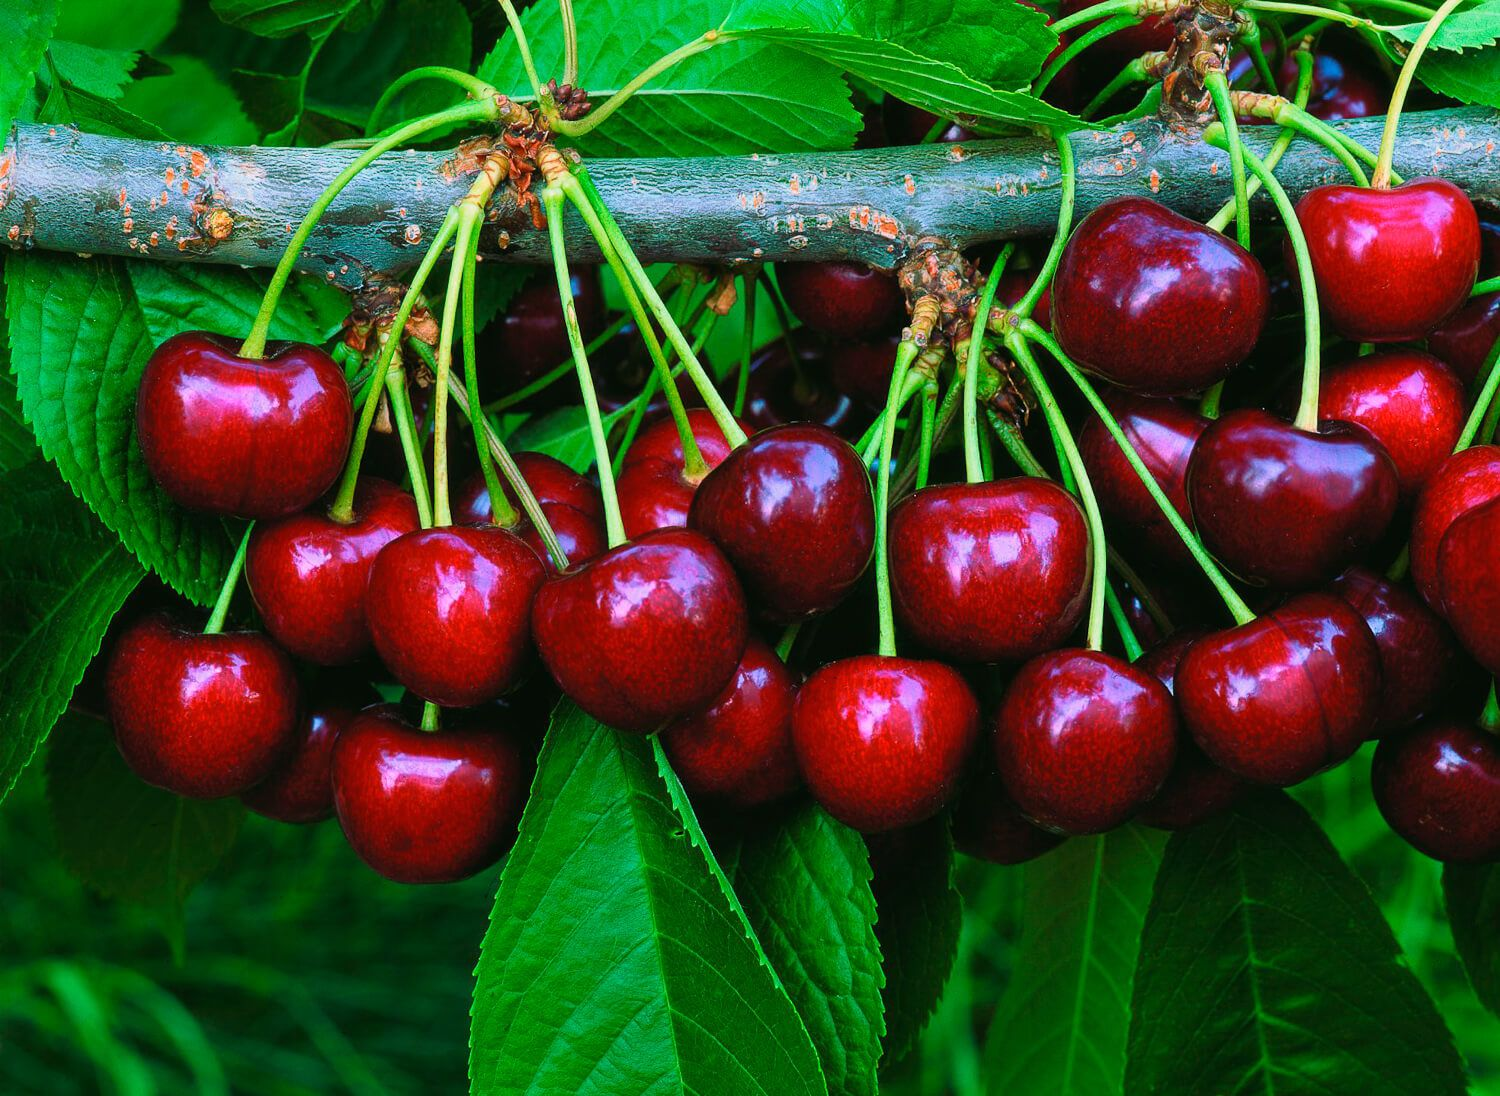 Pin On Cheering For Cherries